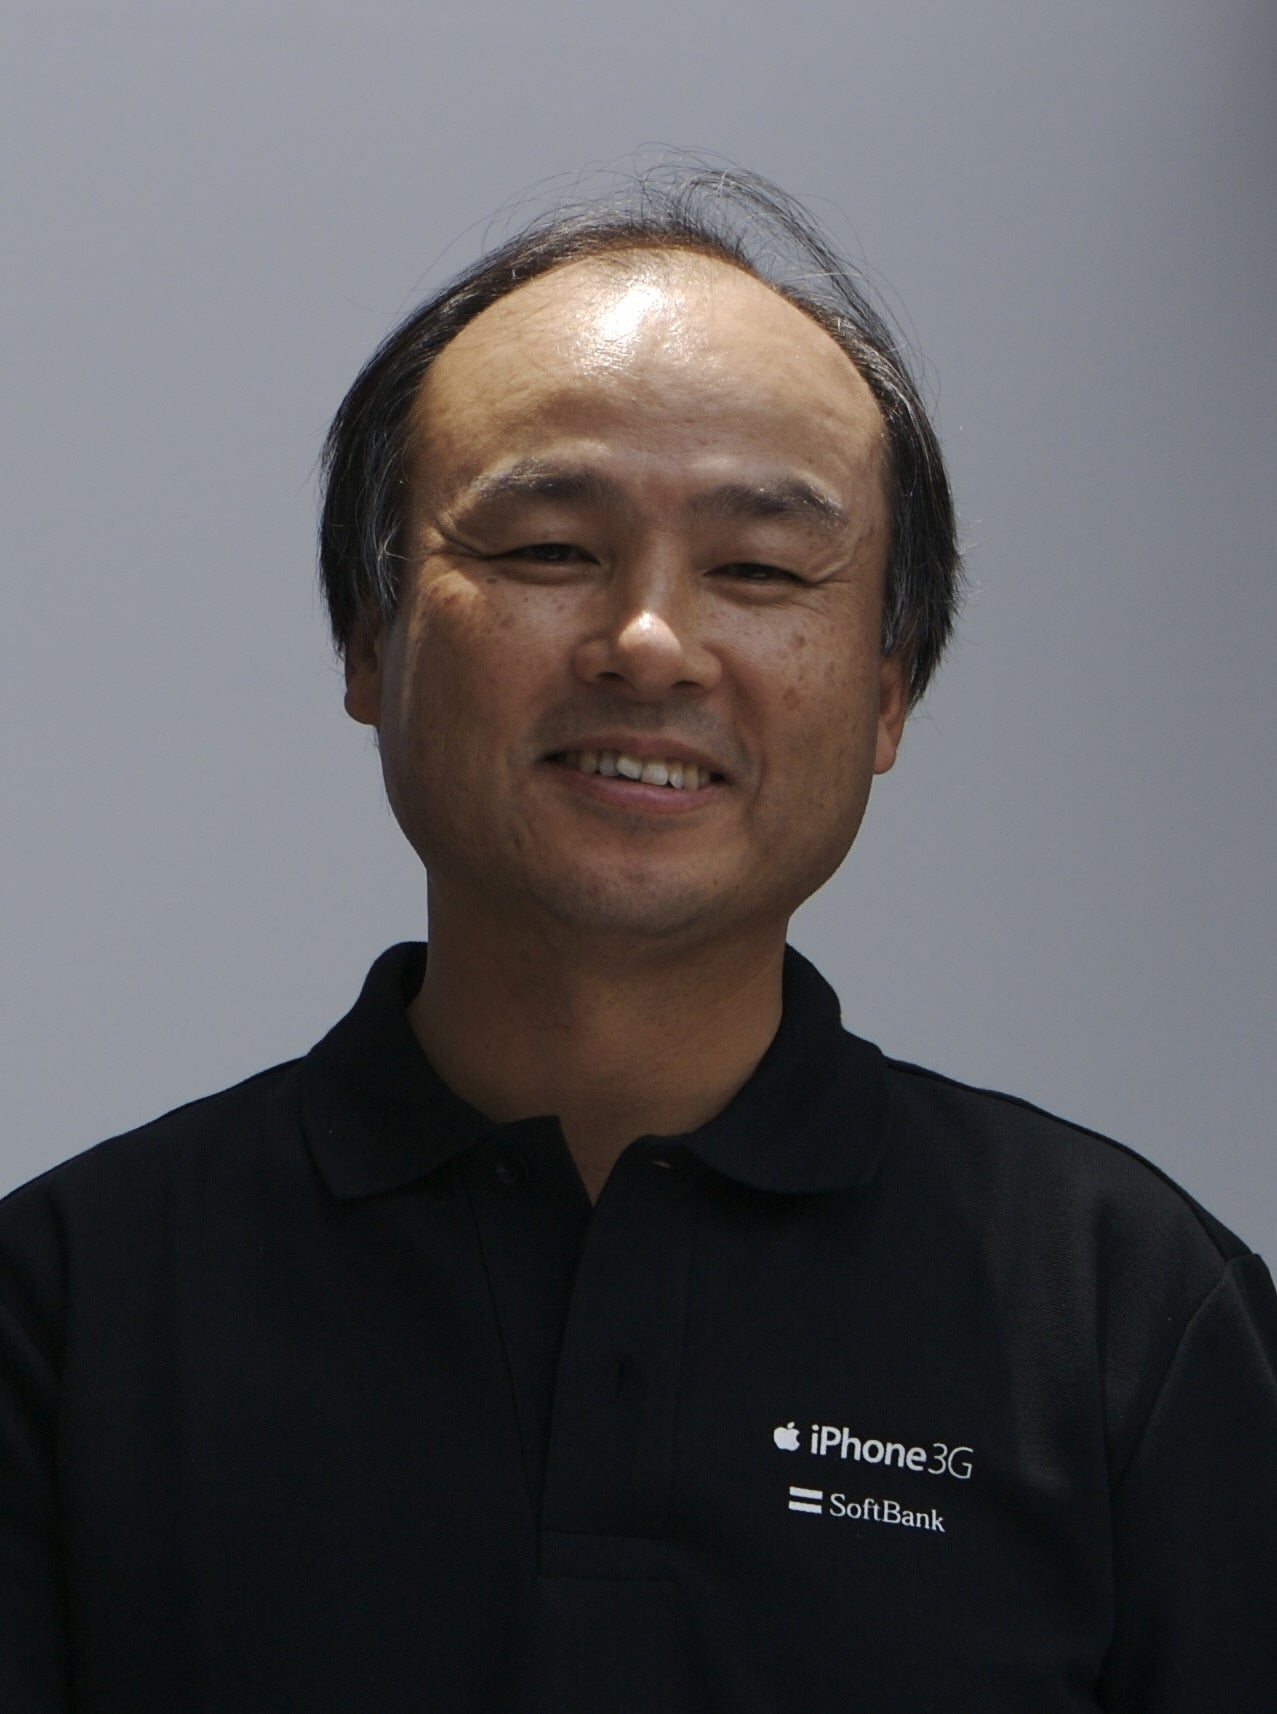 softbank founder